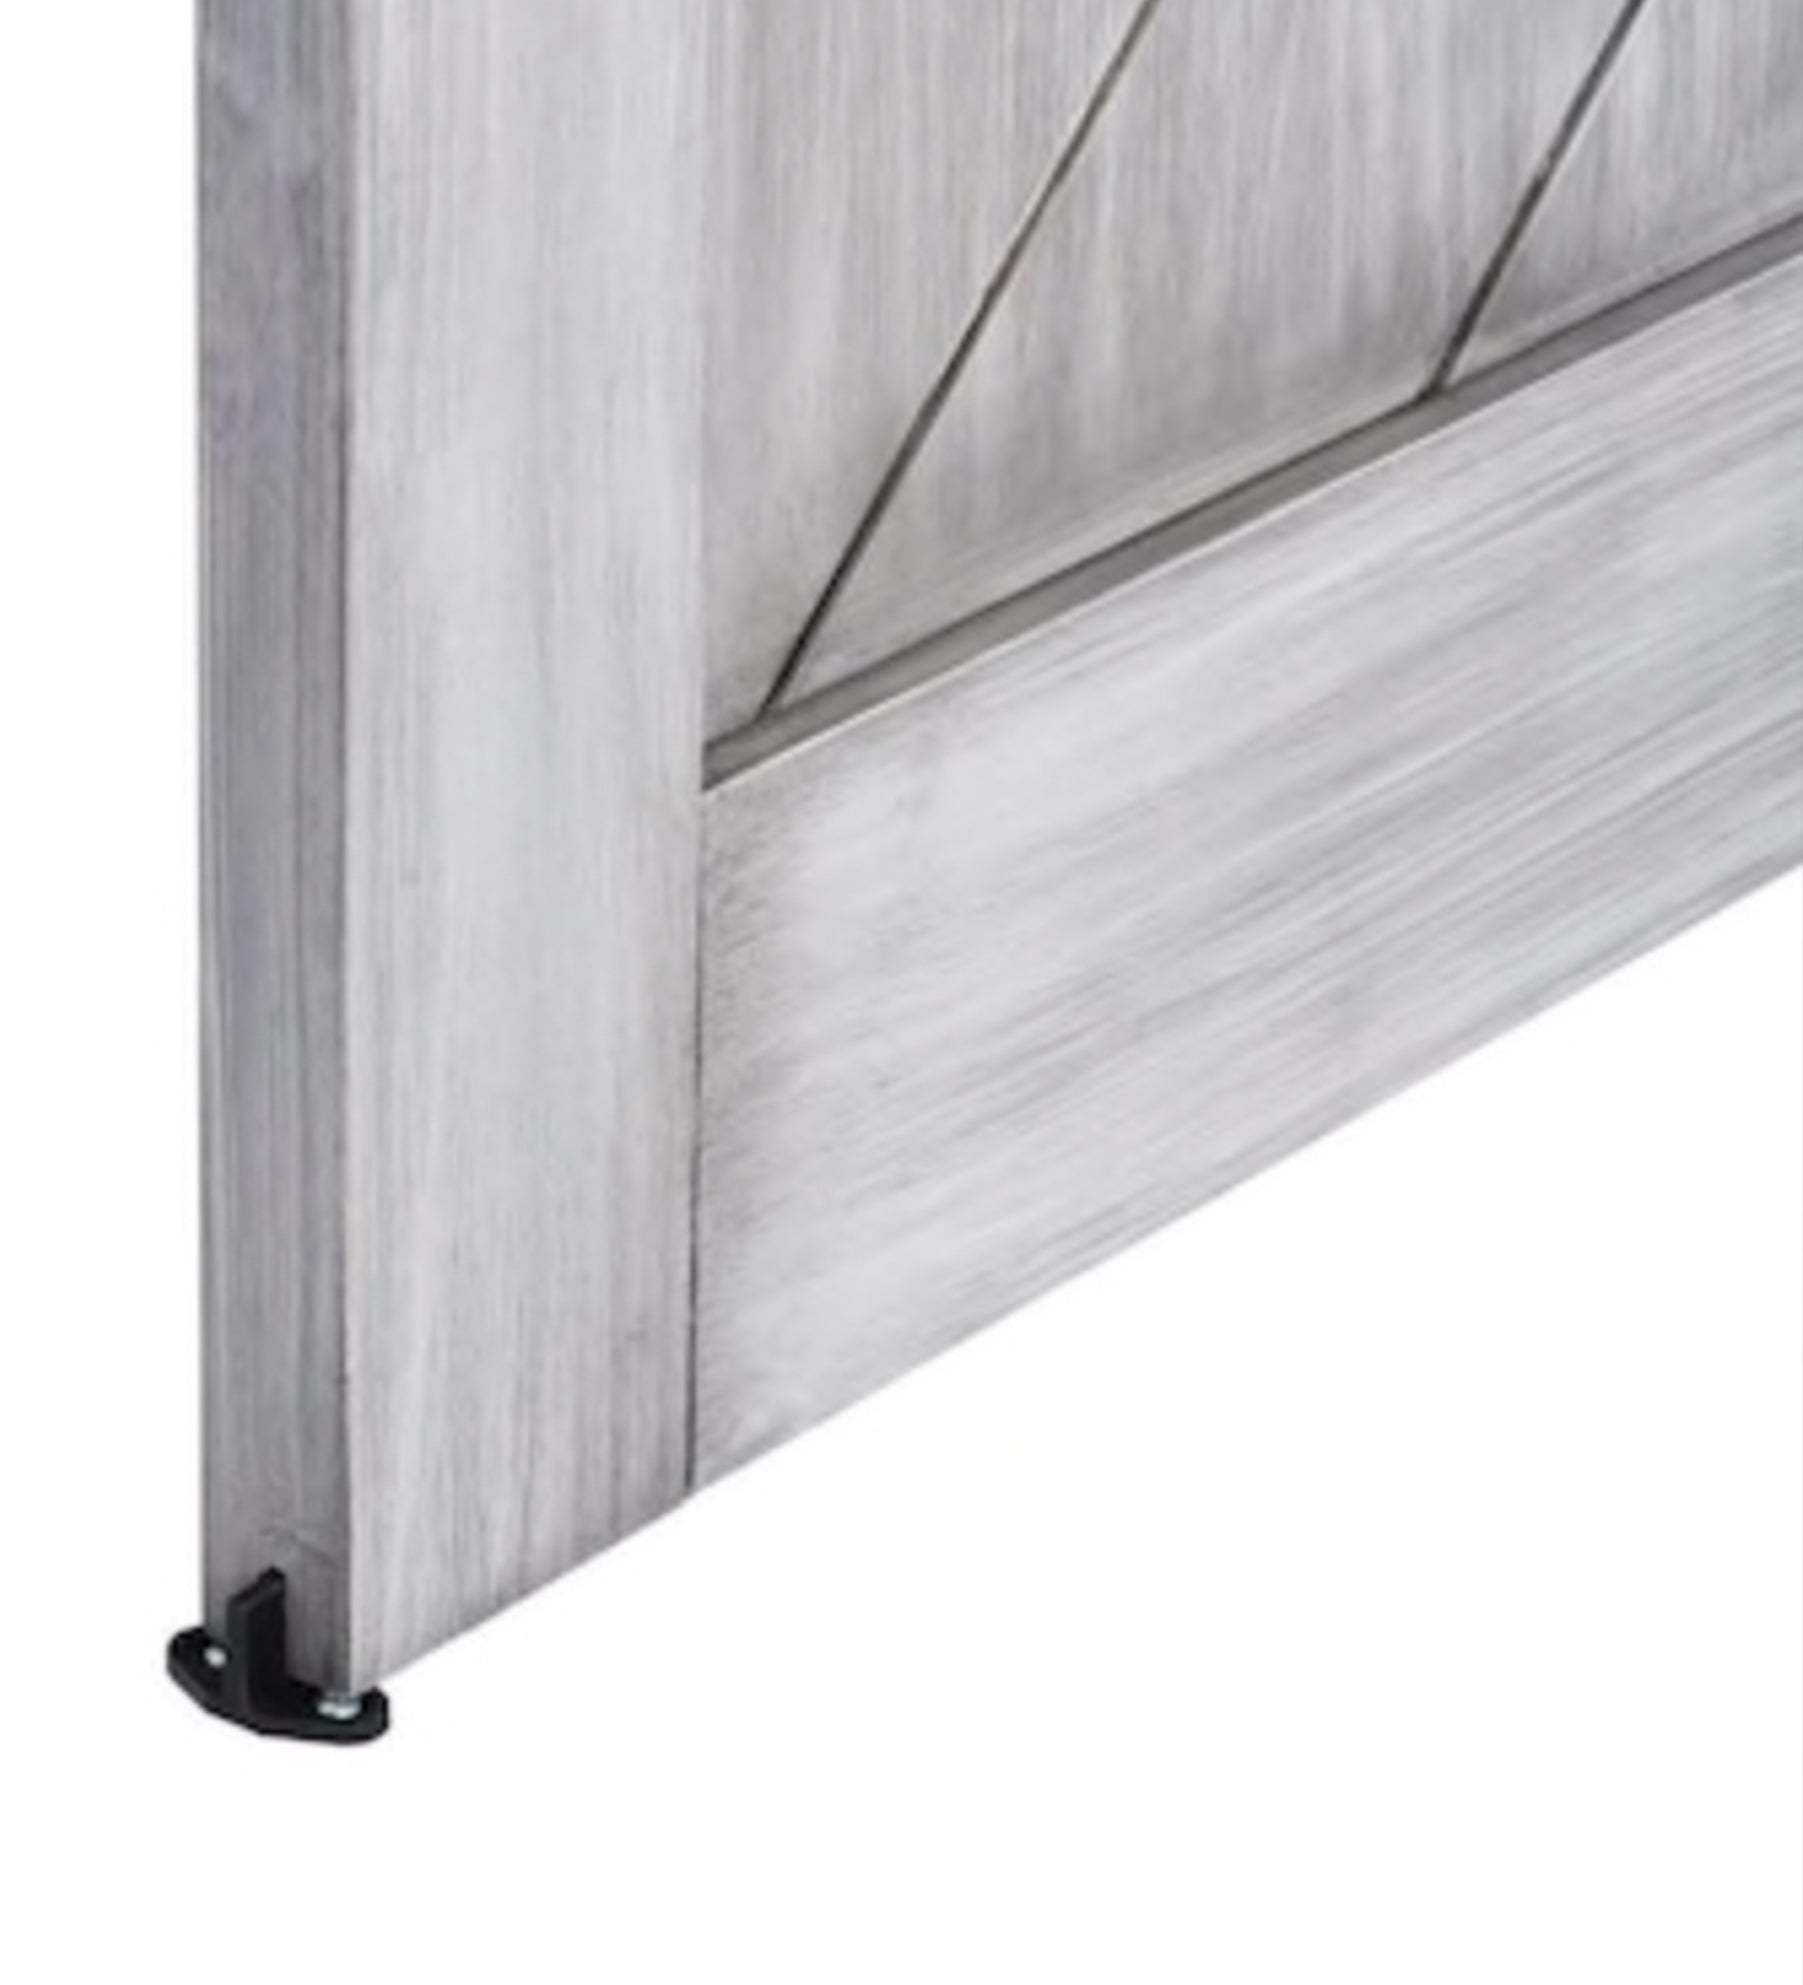 INSTALLED ReliaBilt Satin Nickel Gray Stain Prefinished Herringbone Wood Barn Door Hardware Included